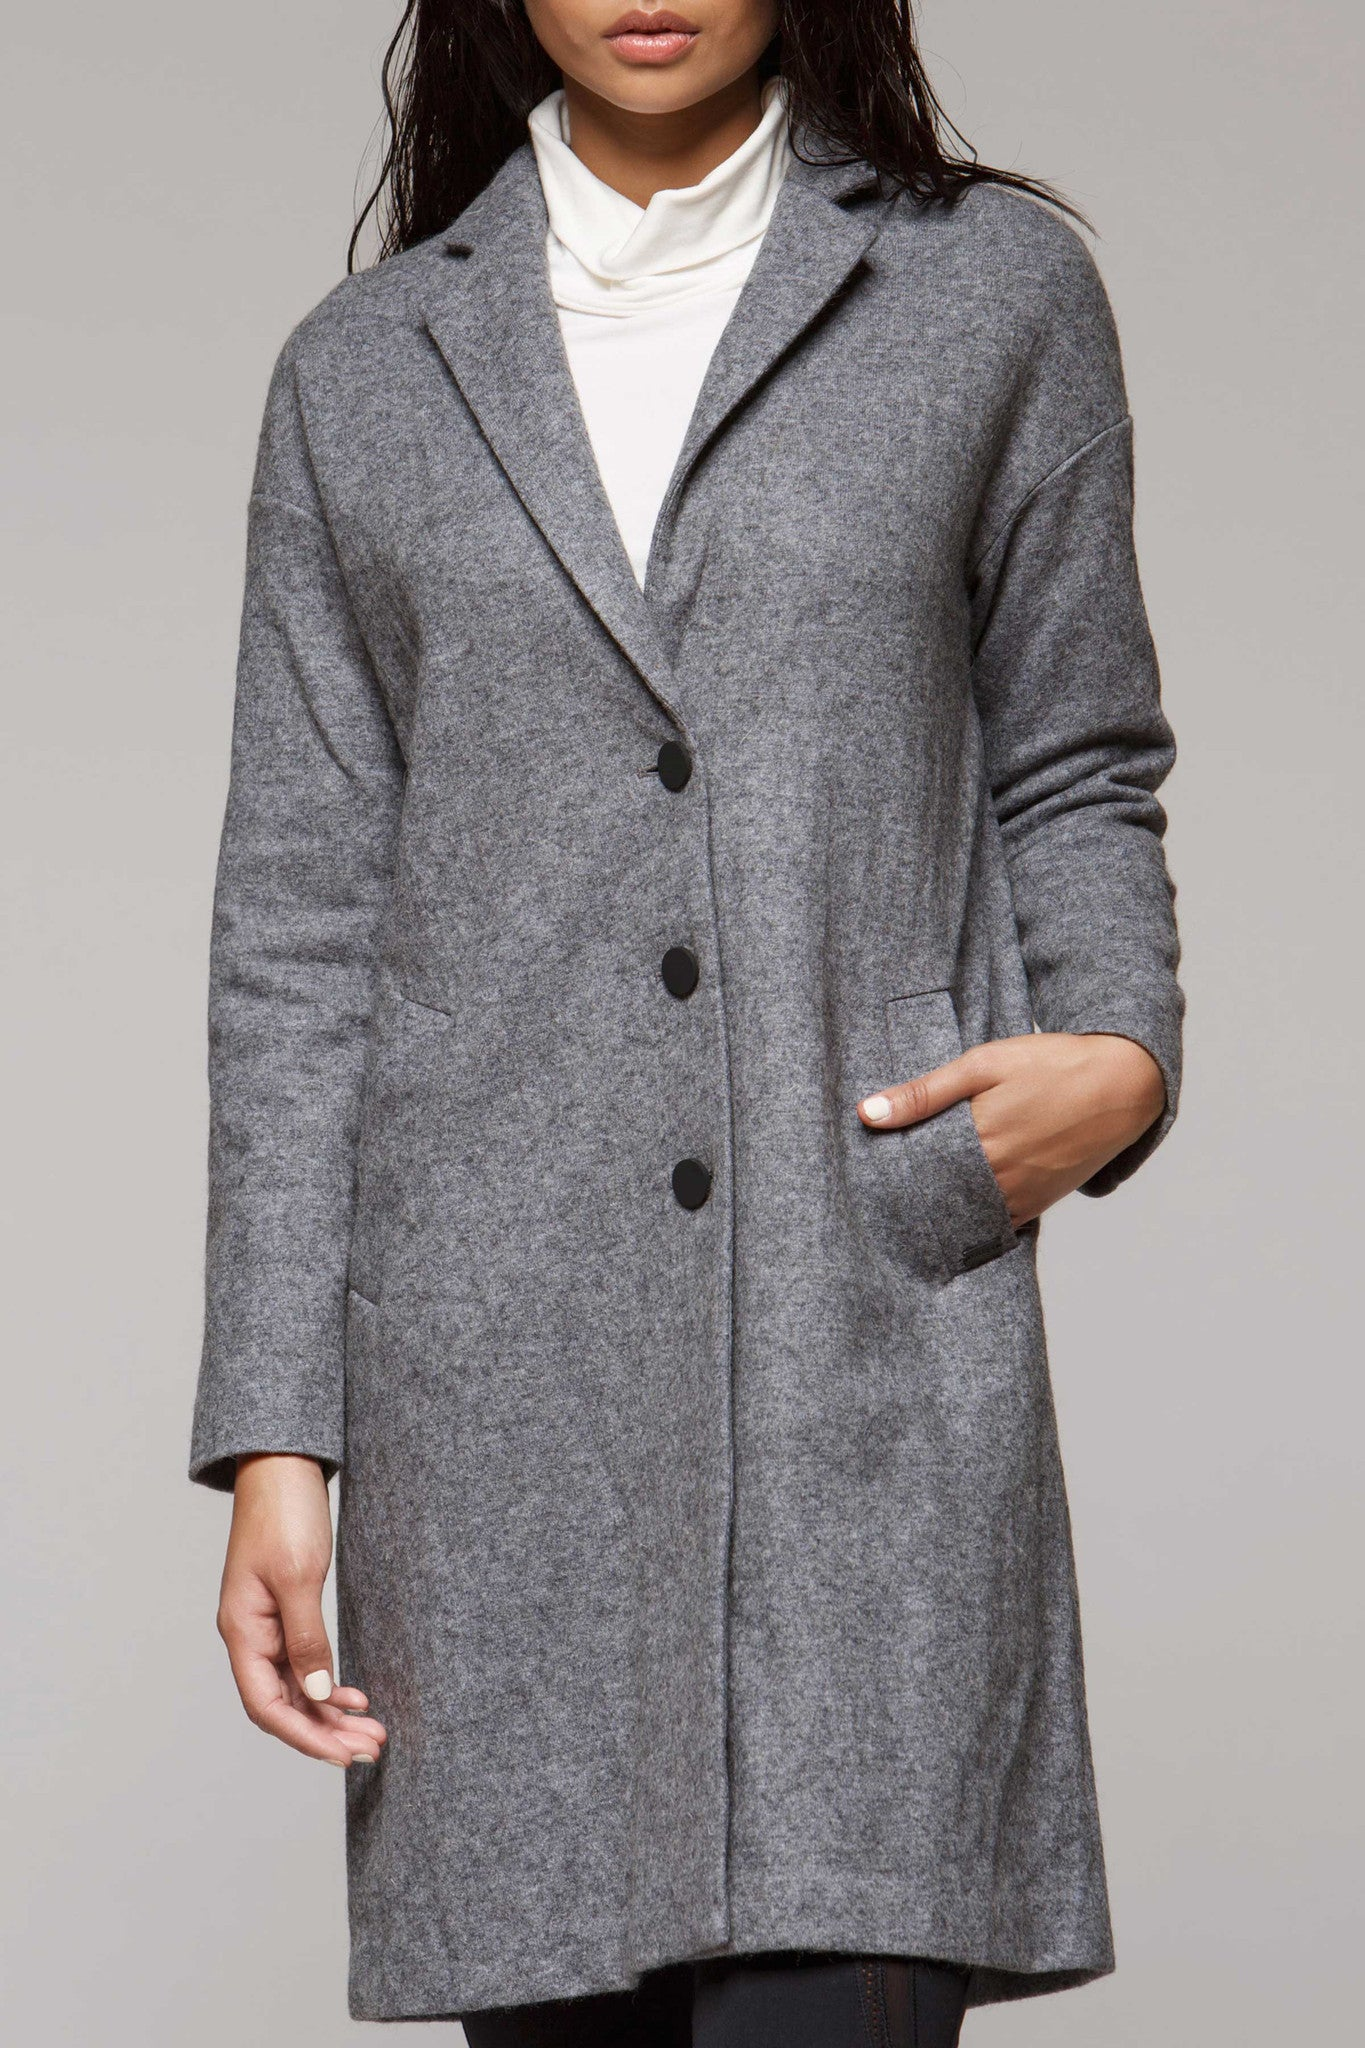 Cora Light Coat - SALE